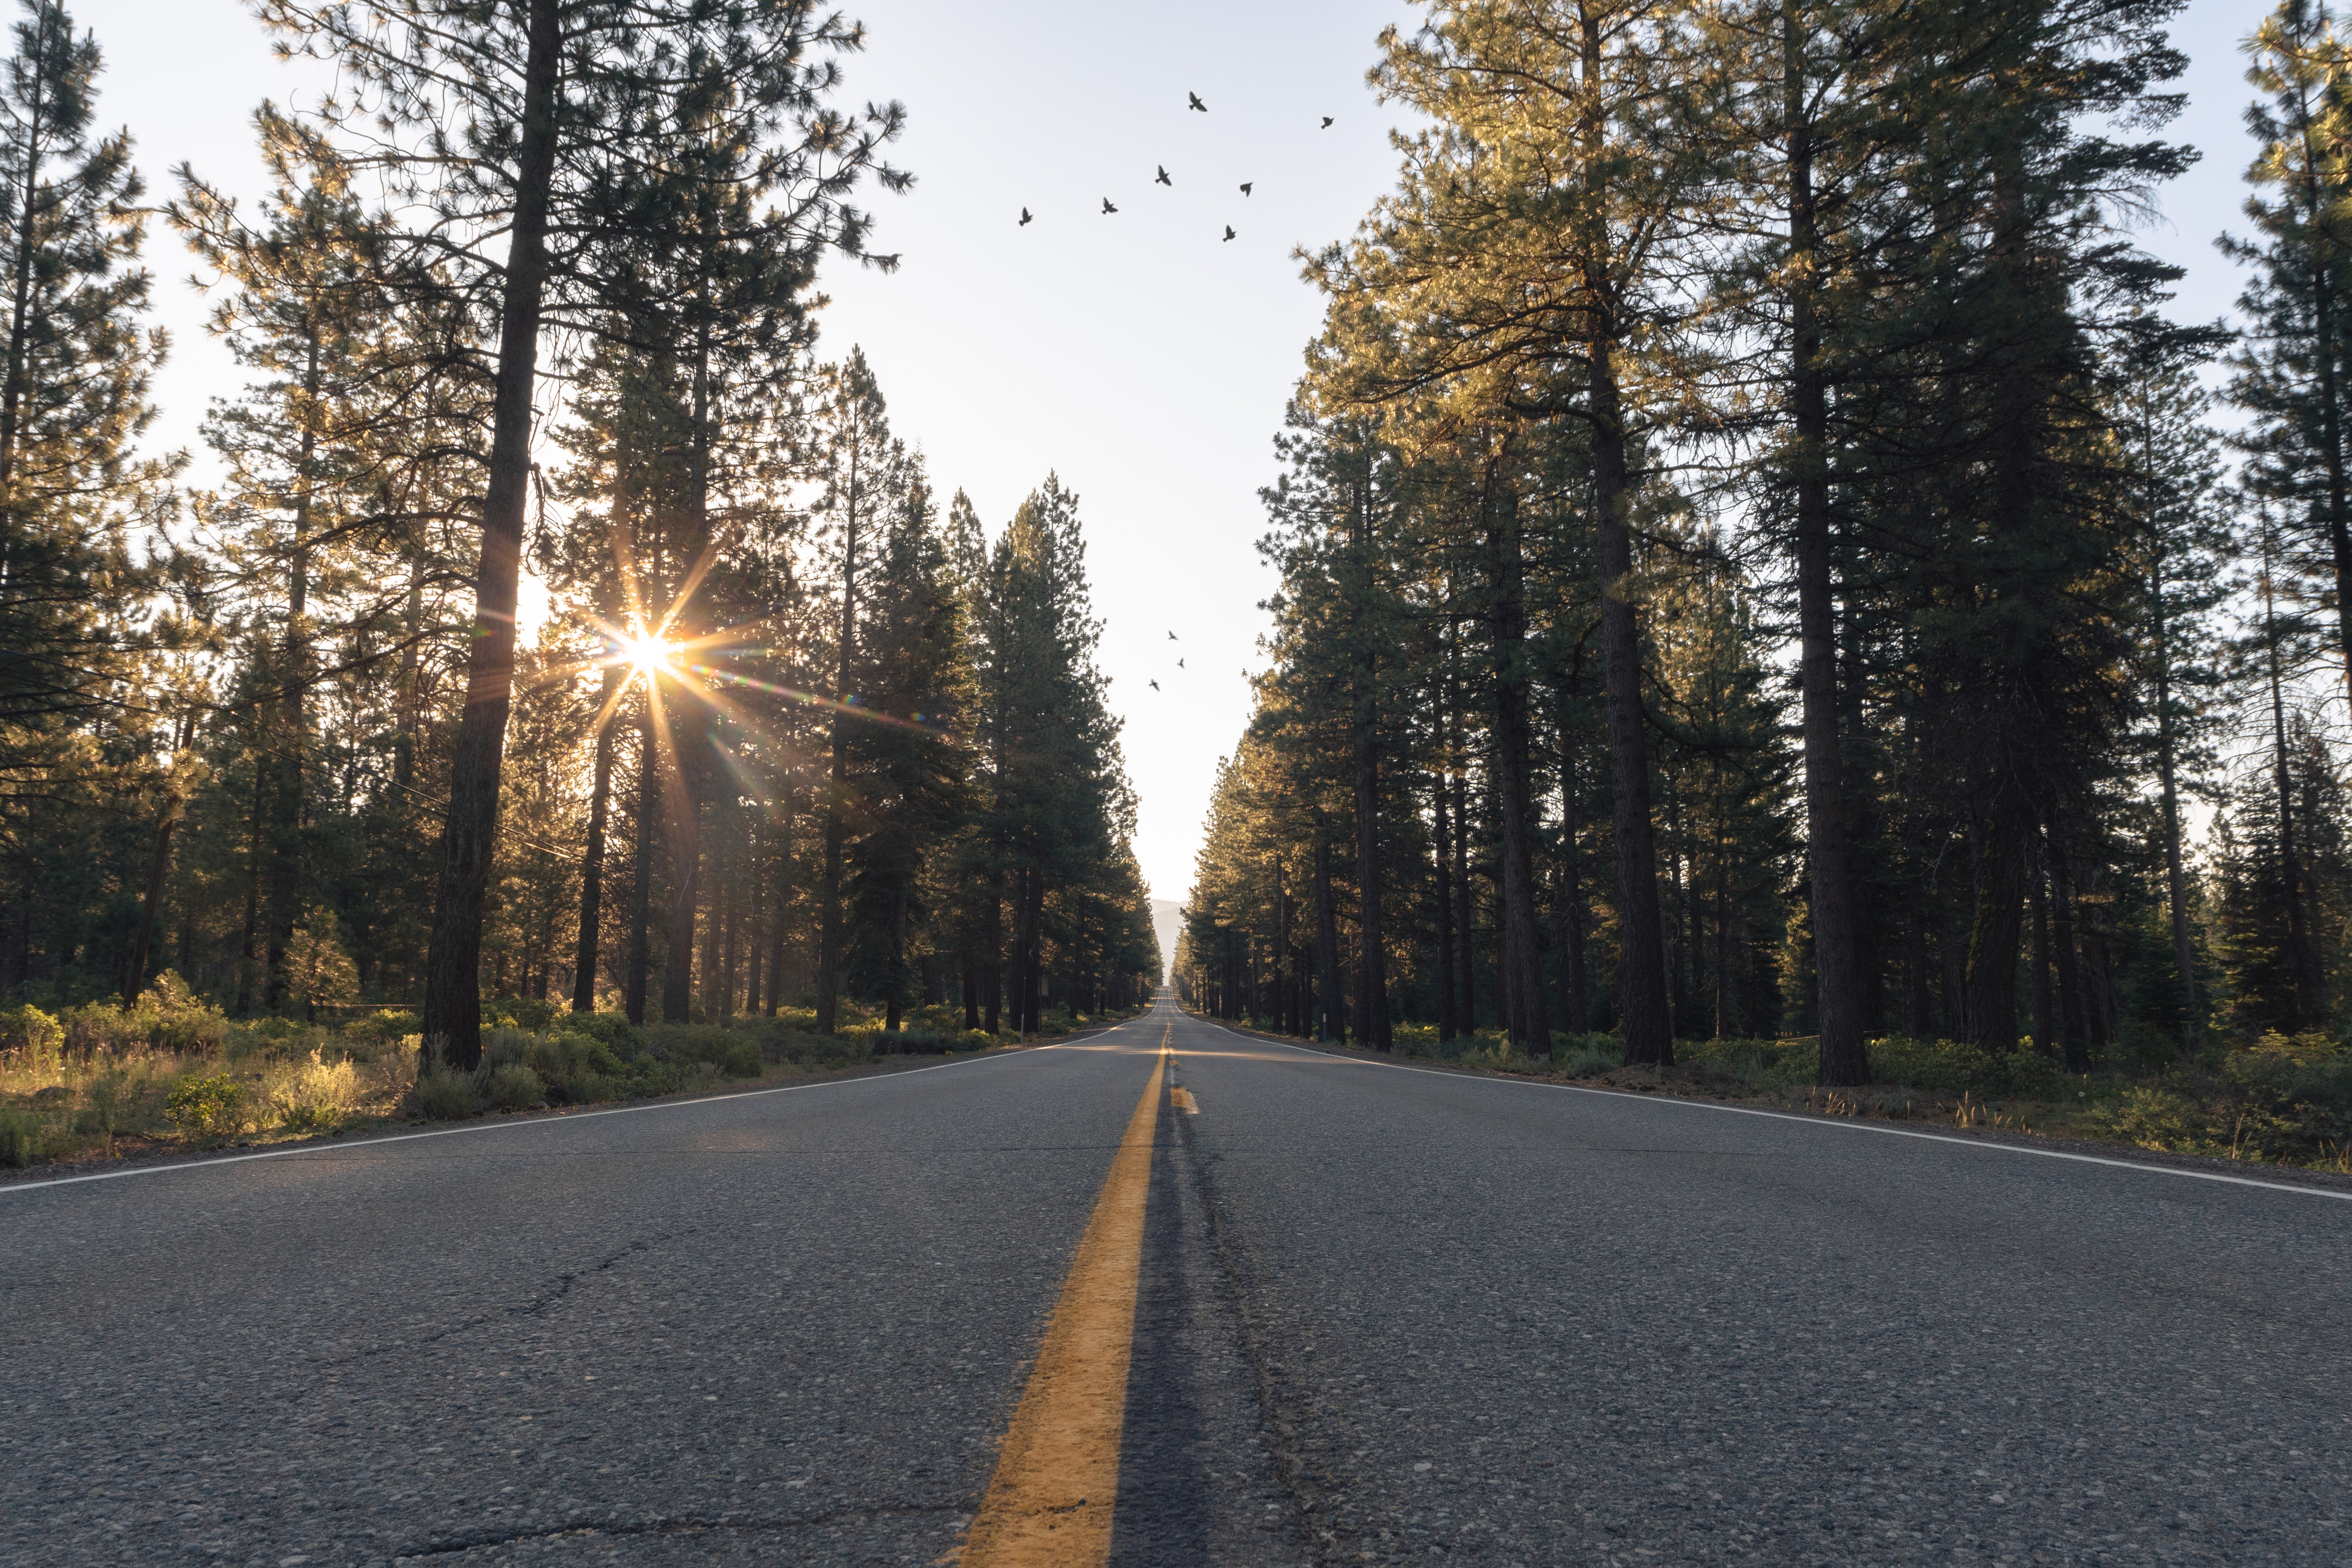 A street surrounded by tall pine trees at sunset in Lake Almanor